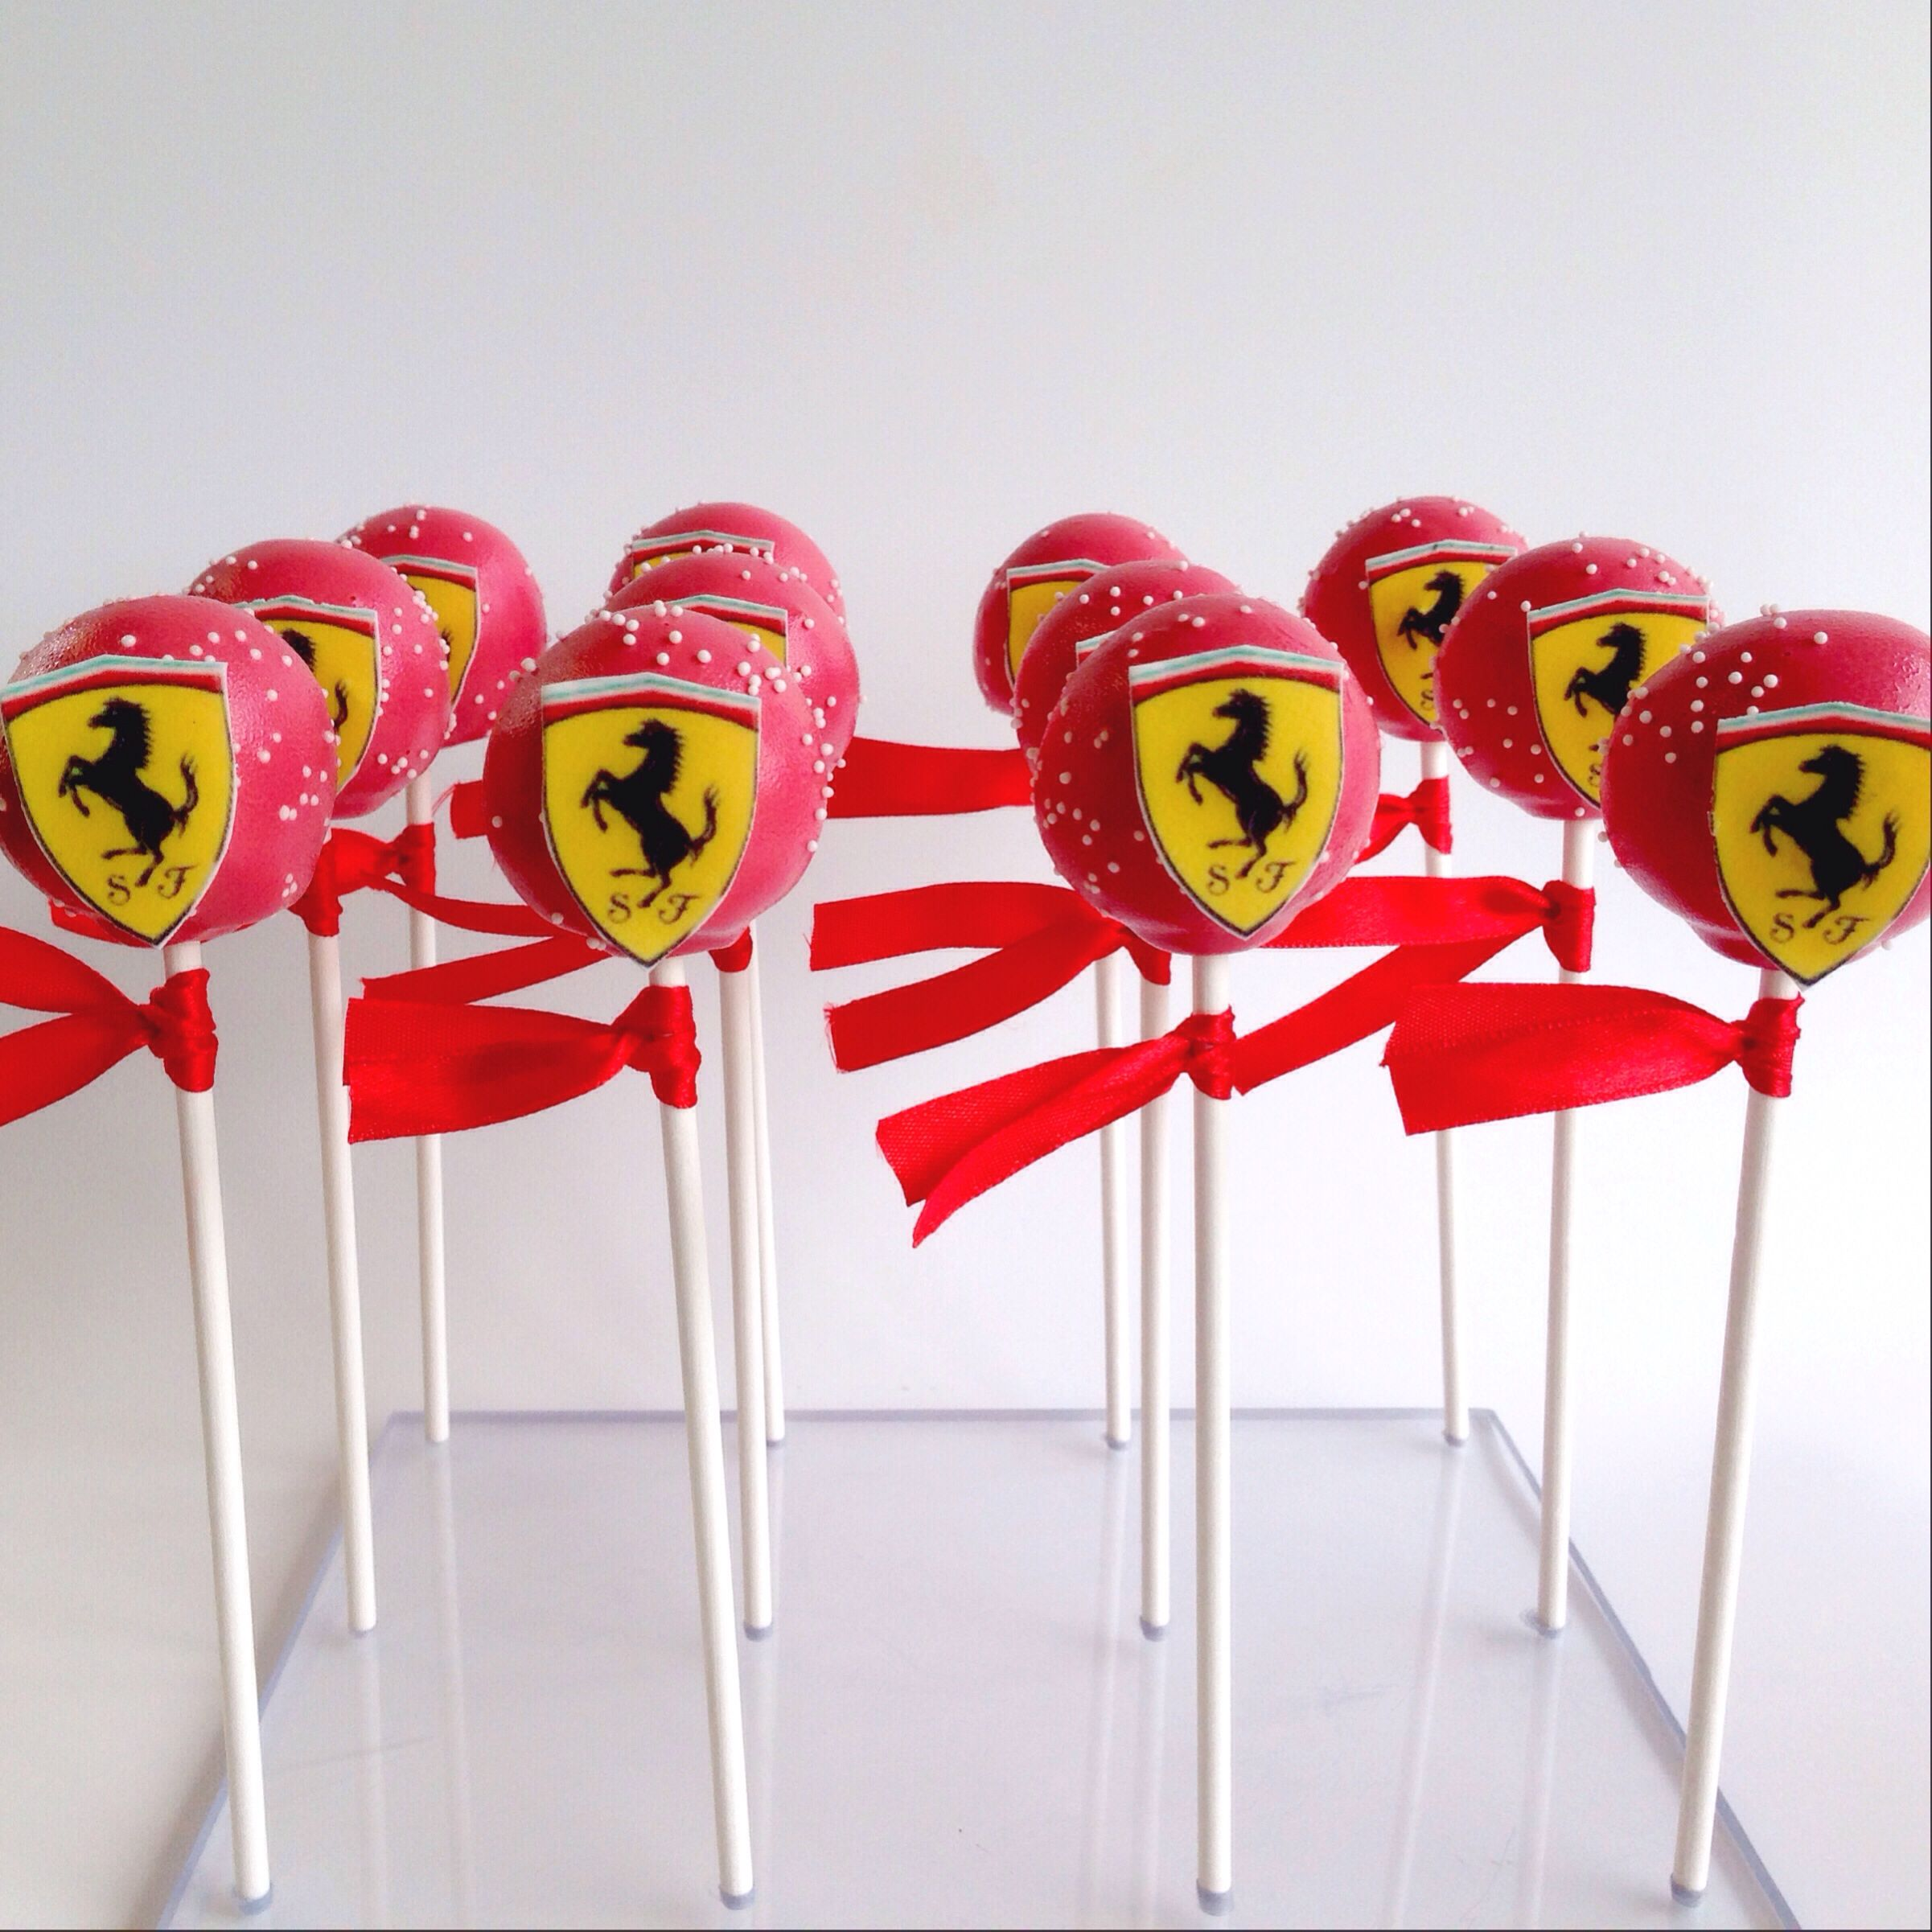 Ferrari Themed Cake Pops